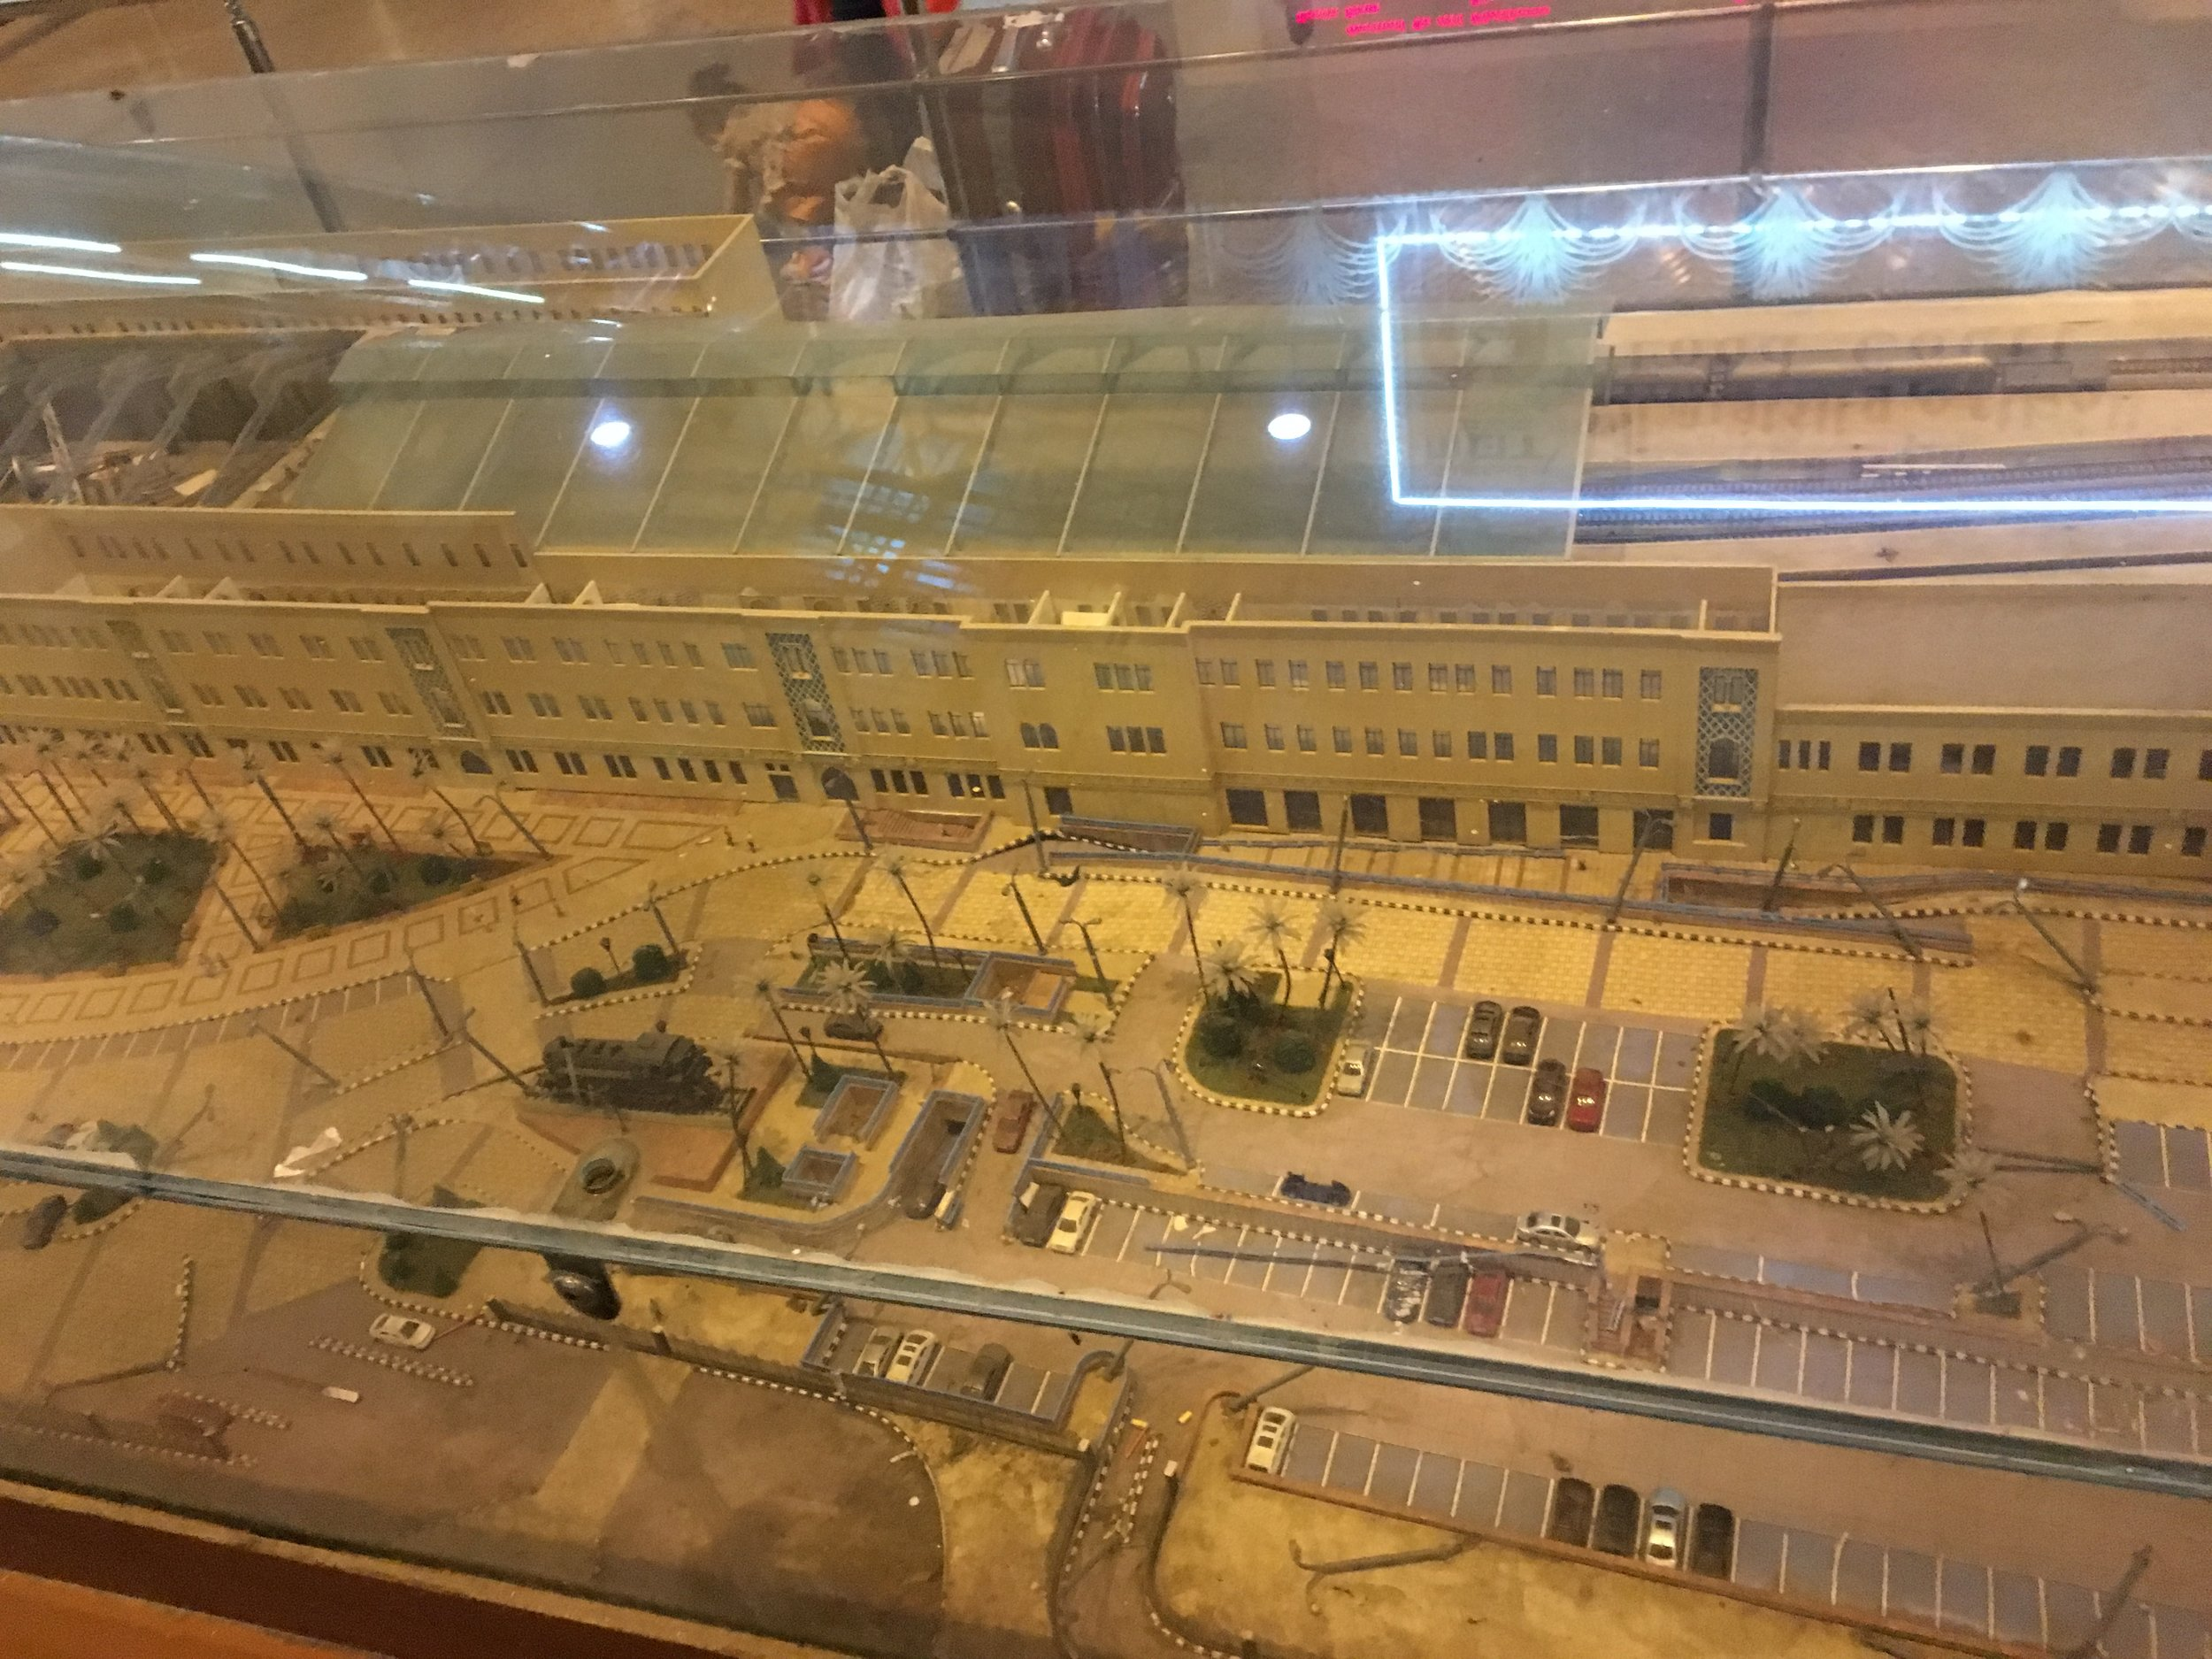 This model of the Cairo rail station makes parking look orderly and easy to understandable. It's not. Cairo traffic is a nightmare.